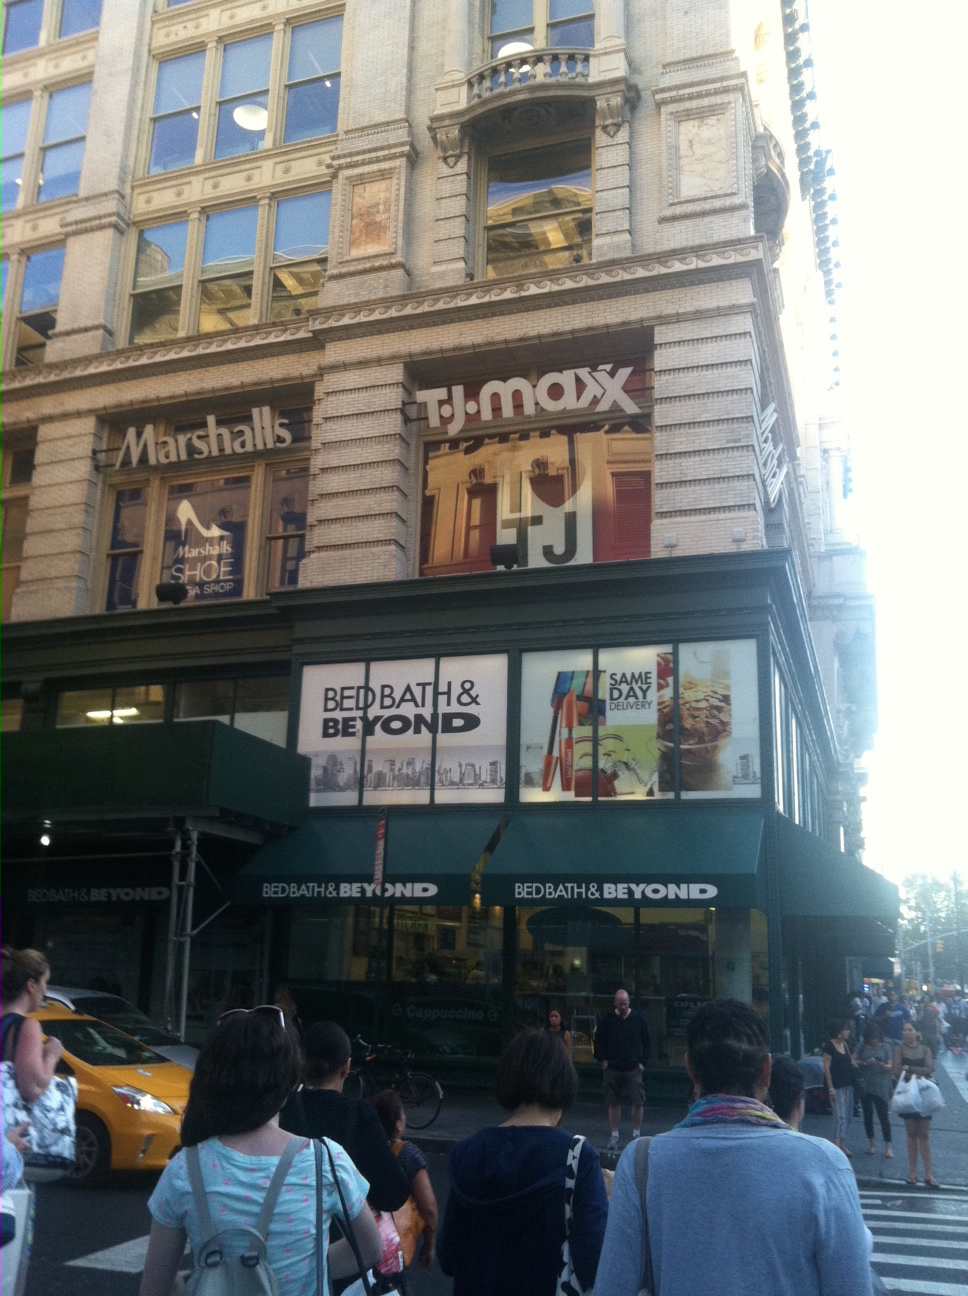 Marshalls Tj Maxx And Bed Bath Beyond Noted In Nyc